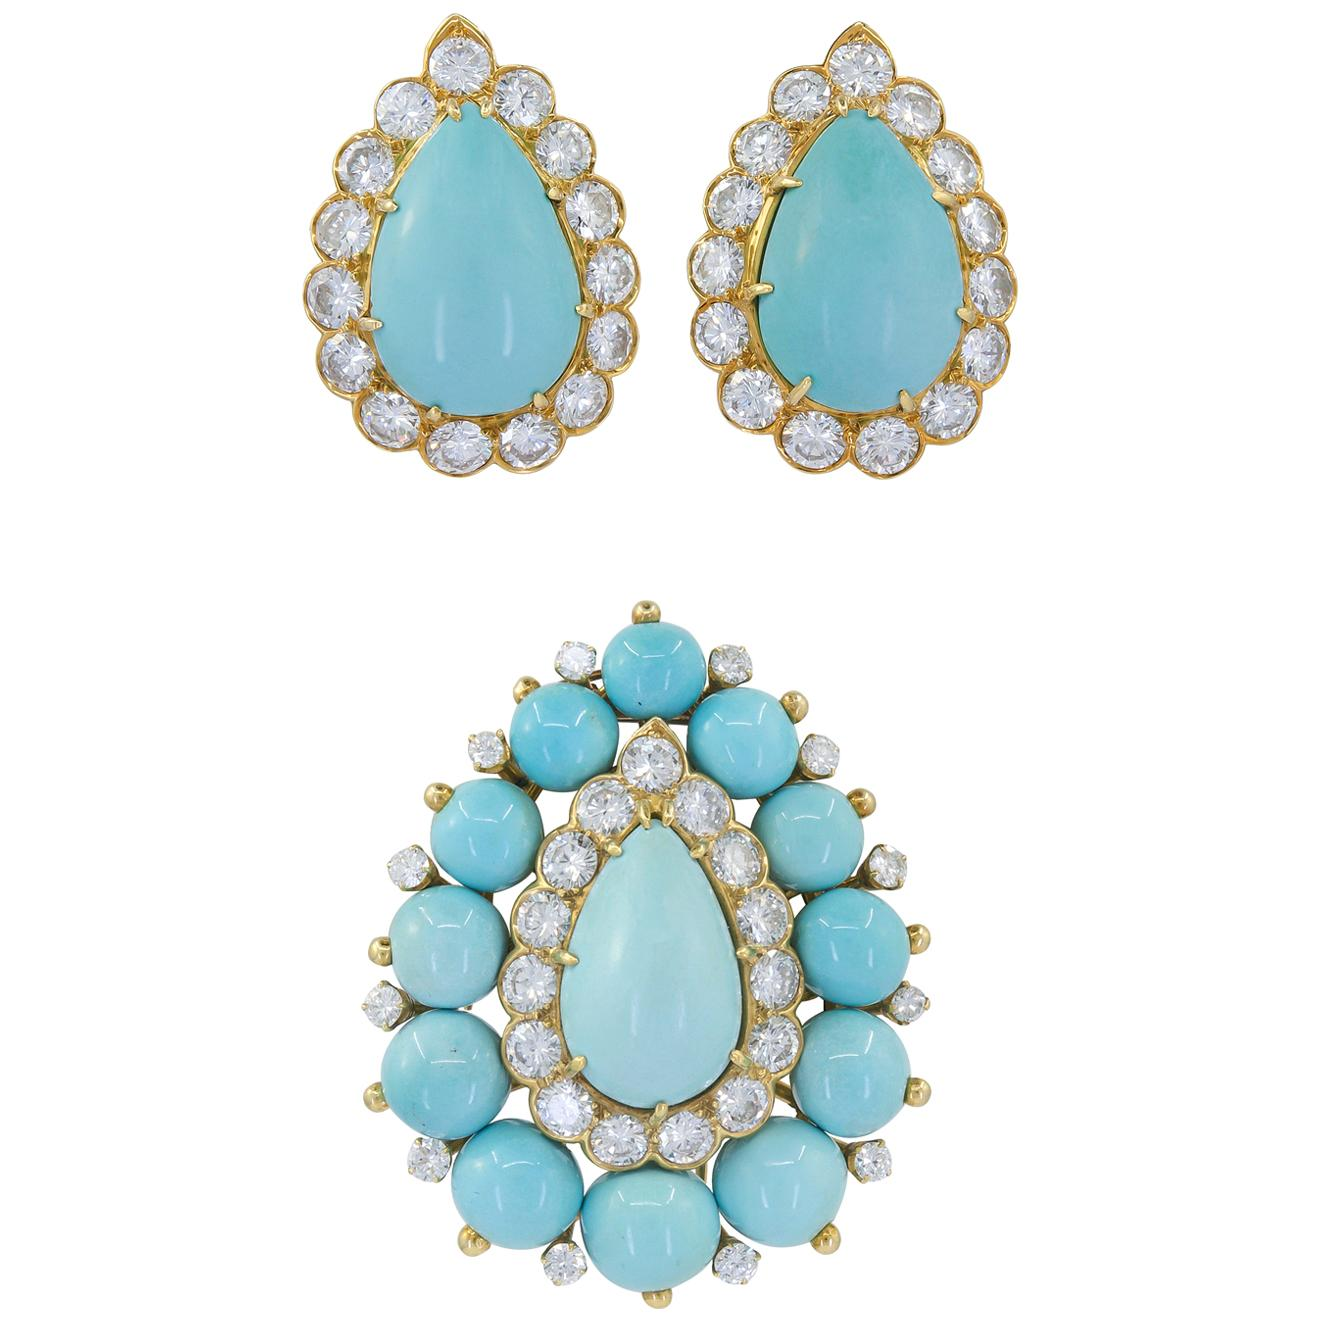 Van Cleef & Arpels Diamond, Turquoise Earrings and Brooch